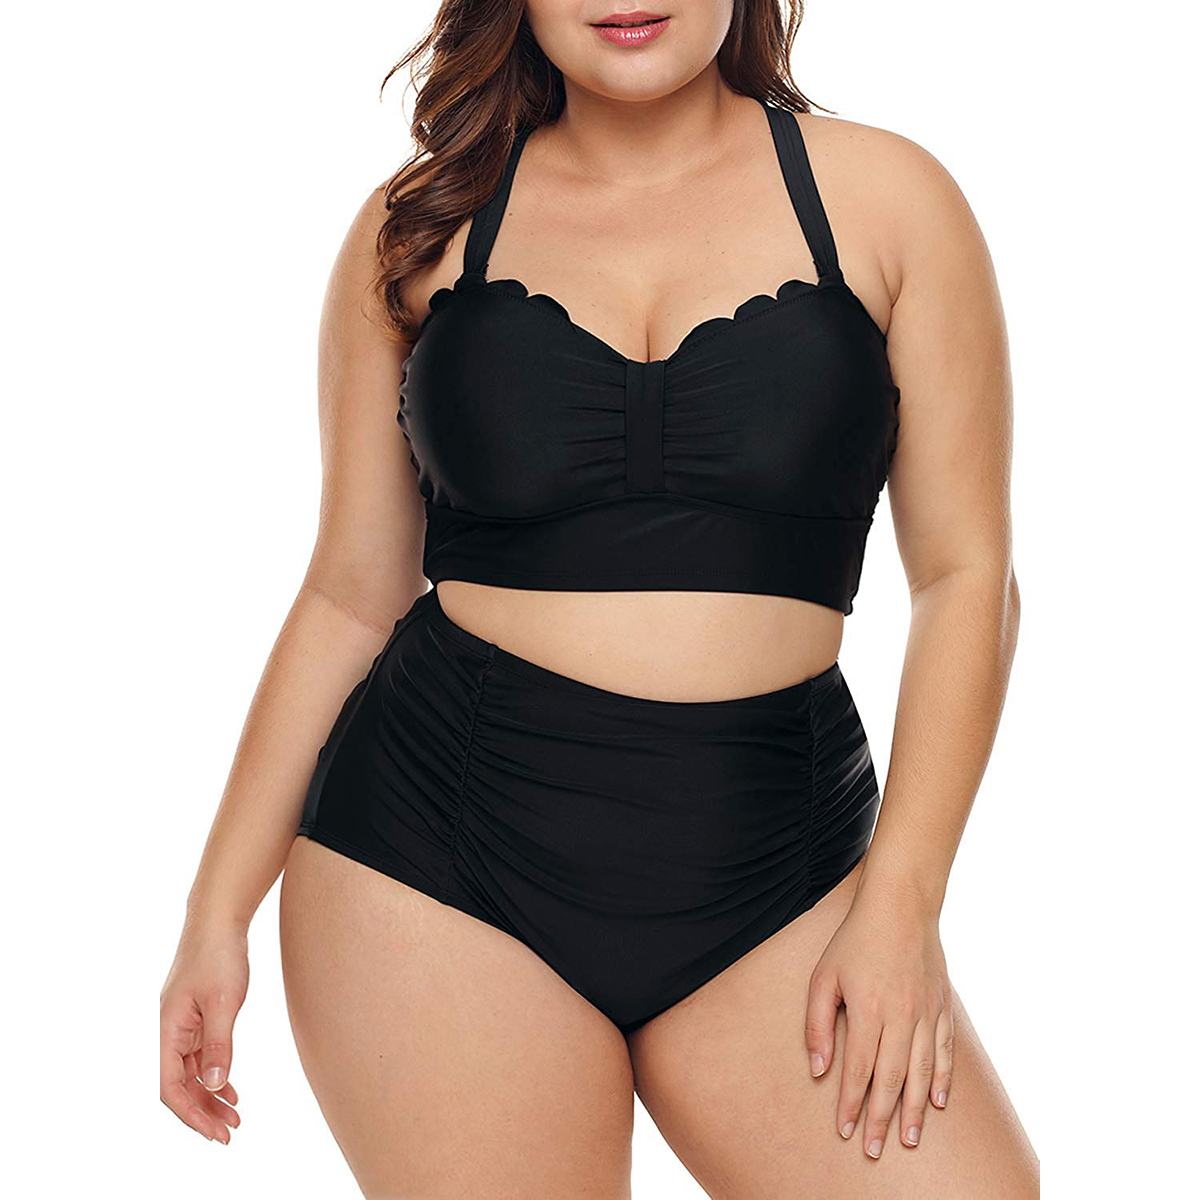 22d91cdc8974b The Best Plus-Size Swimsuits for Curves 2019 | InStyle.com